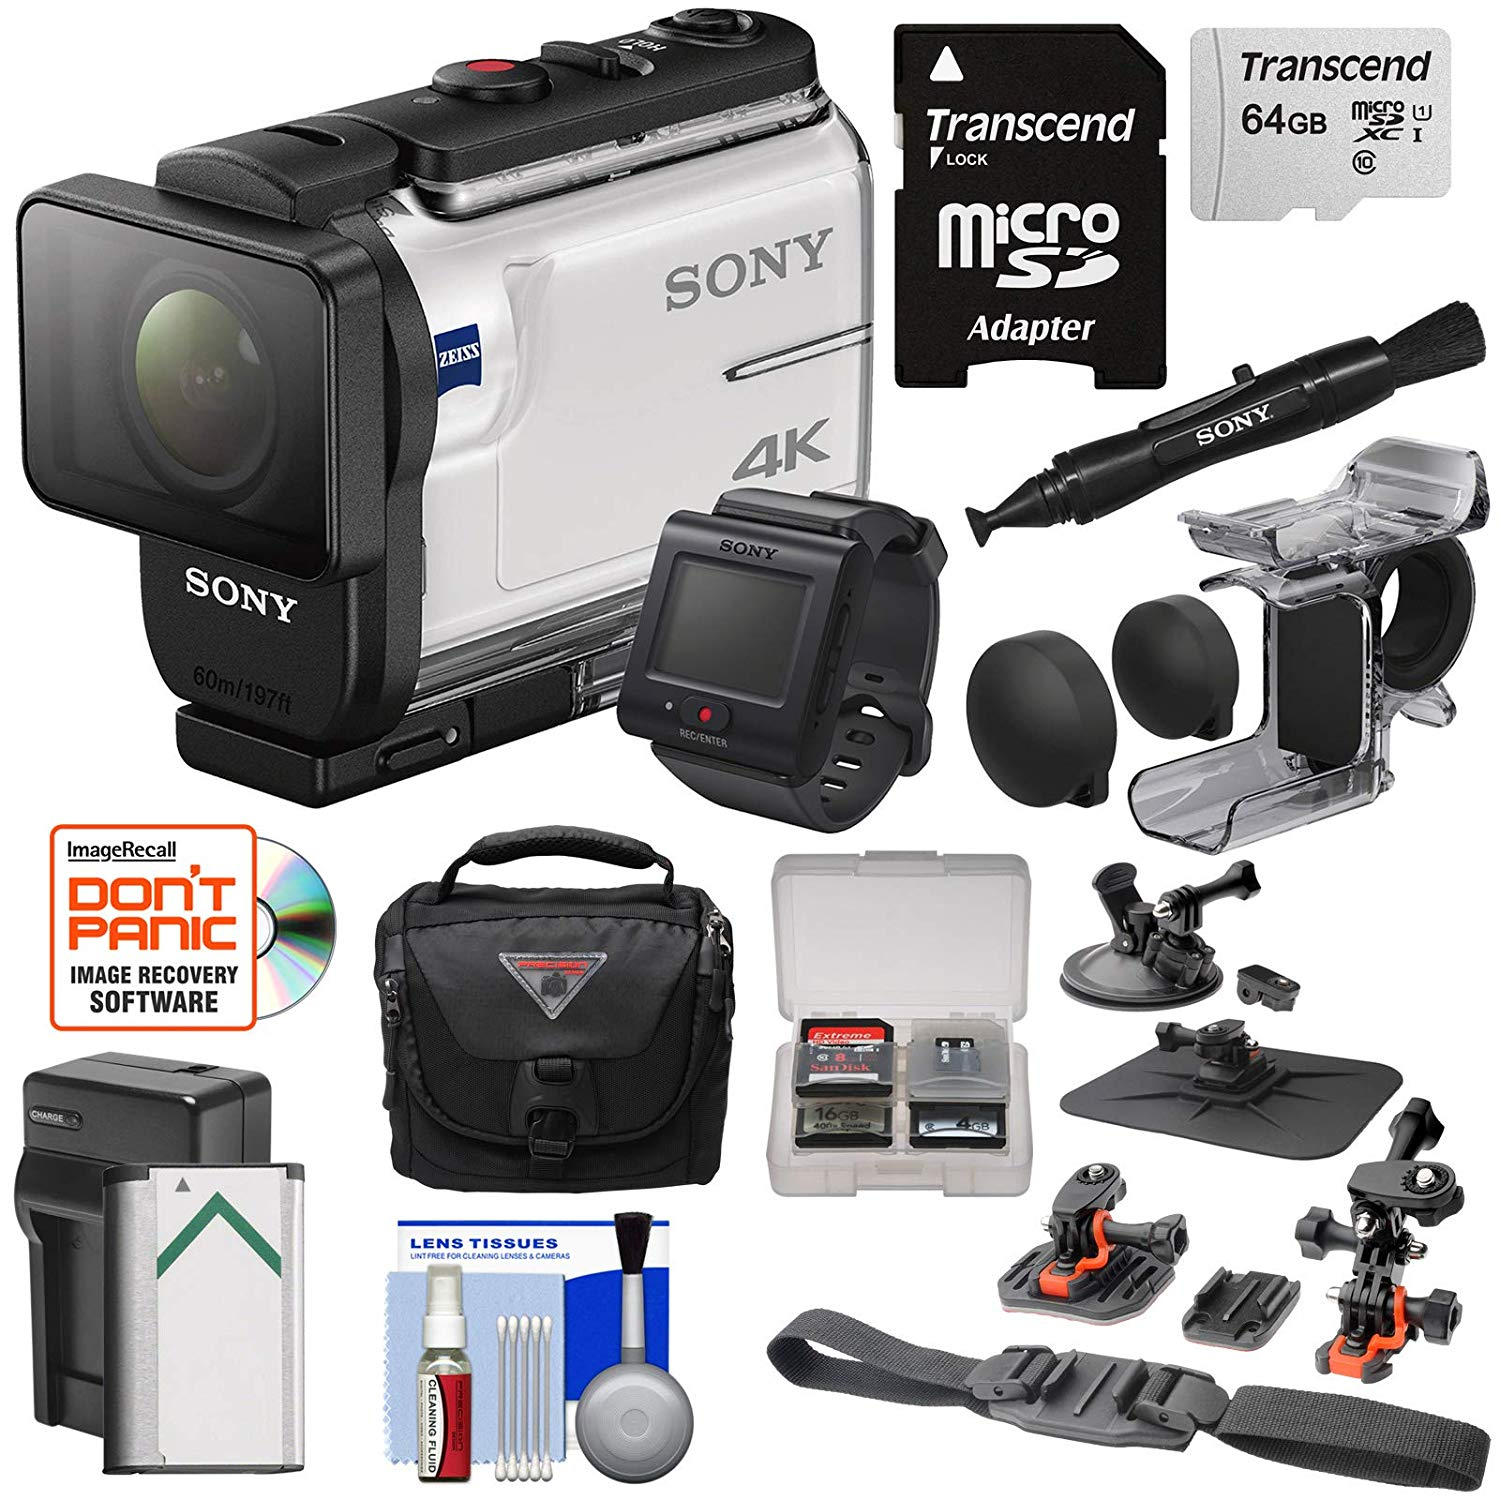 Sony Action Cam FDR-X3000R 4K Camcorder